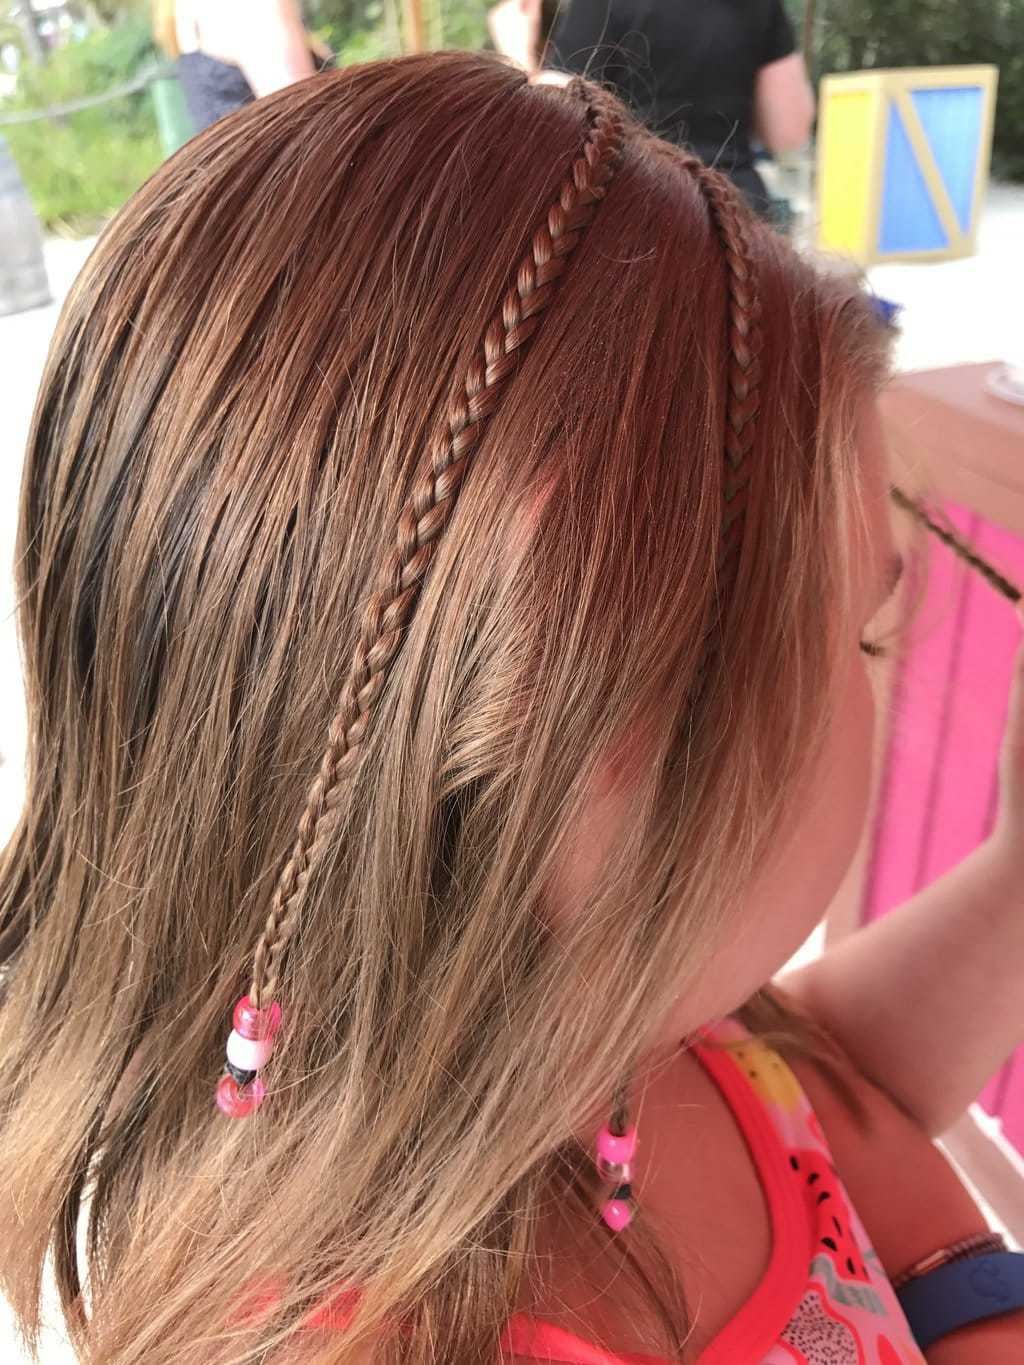 Hair Braid in Disney's Castaway Cay